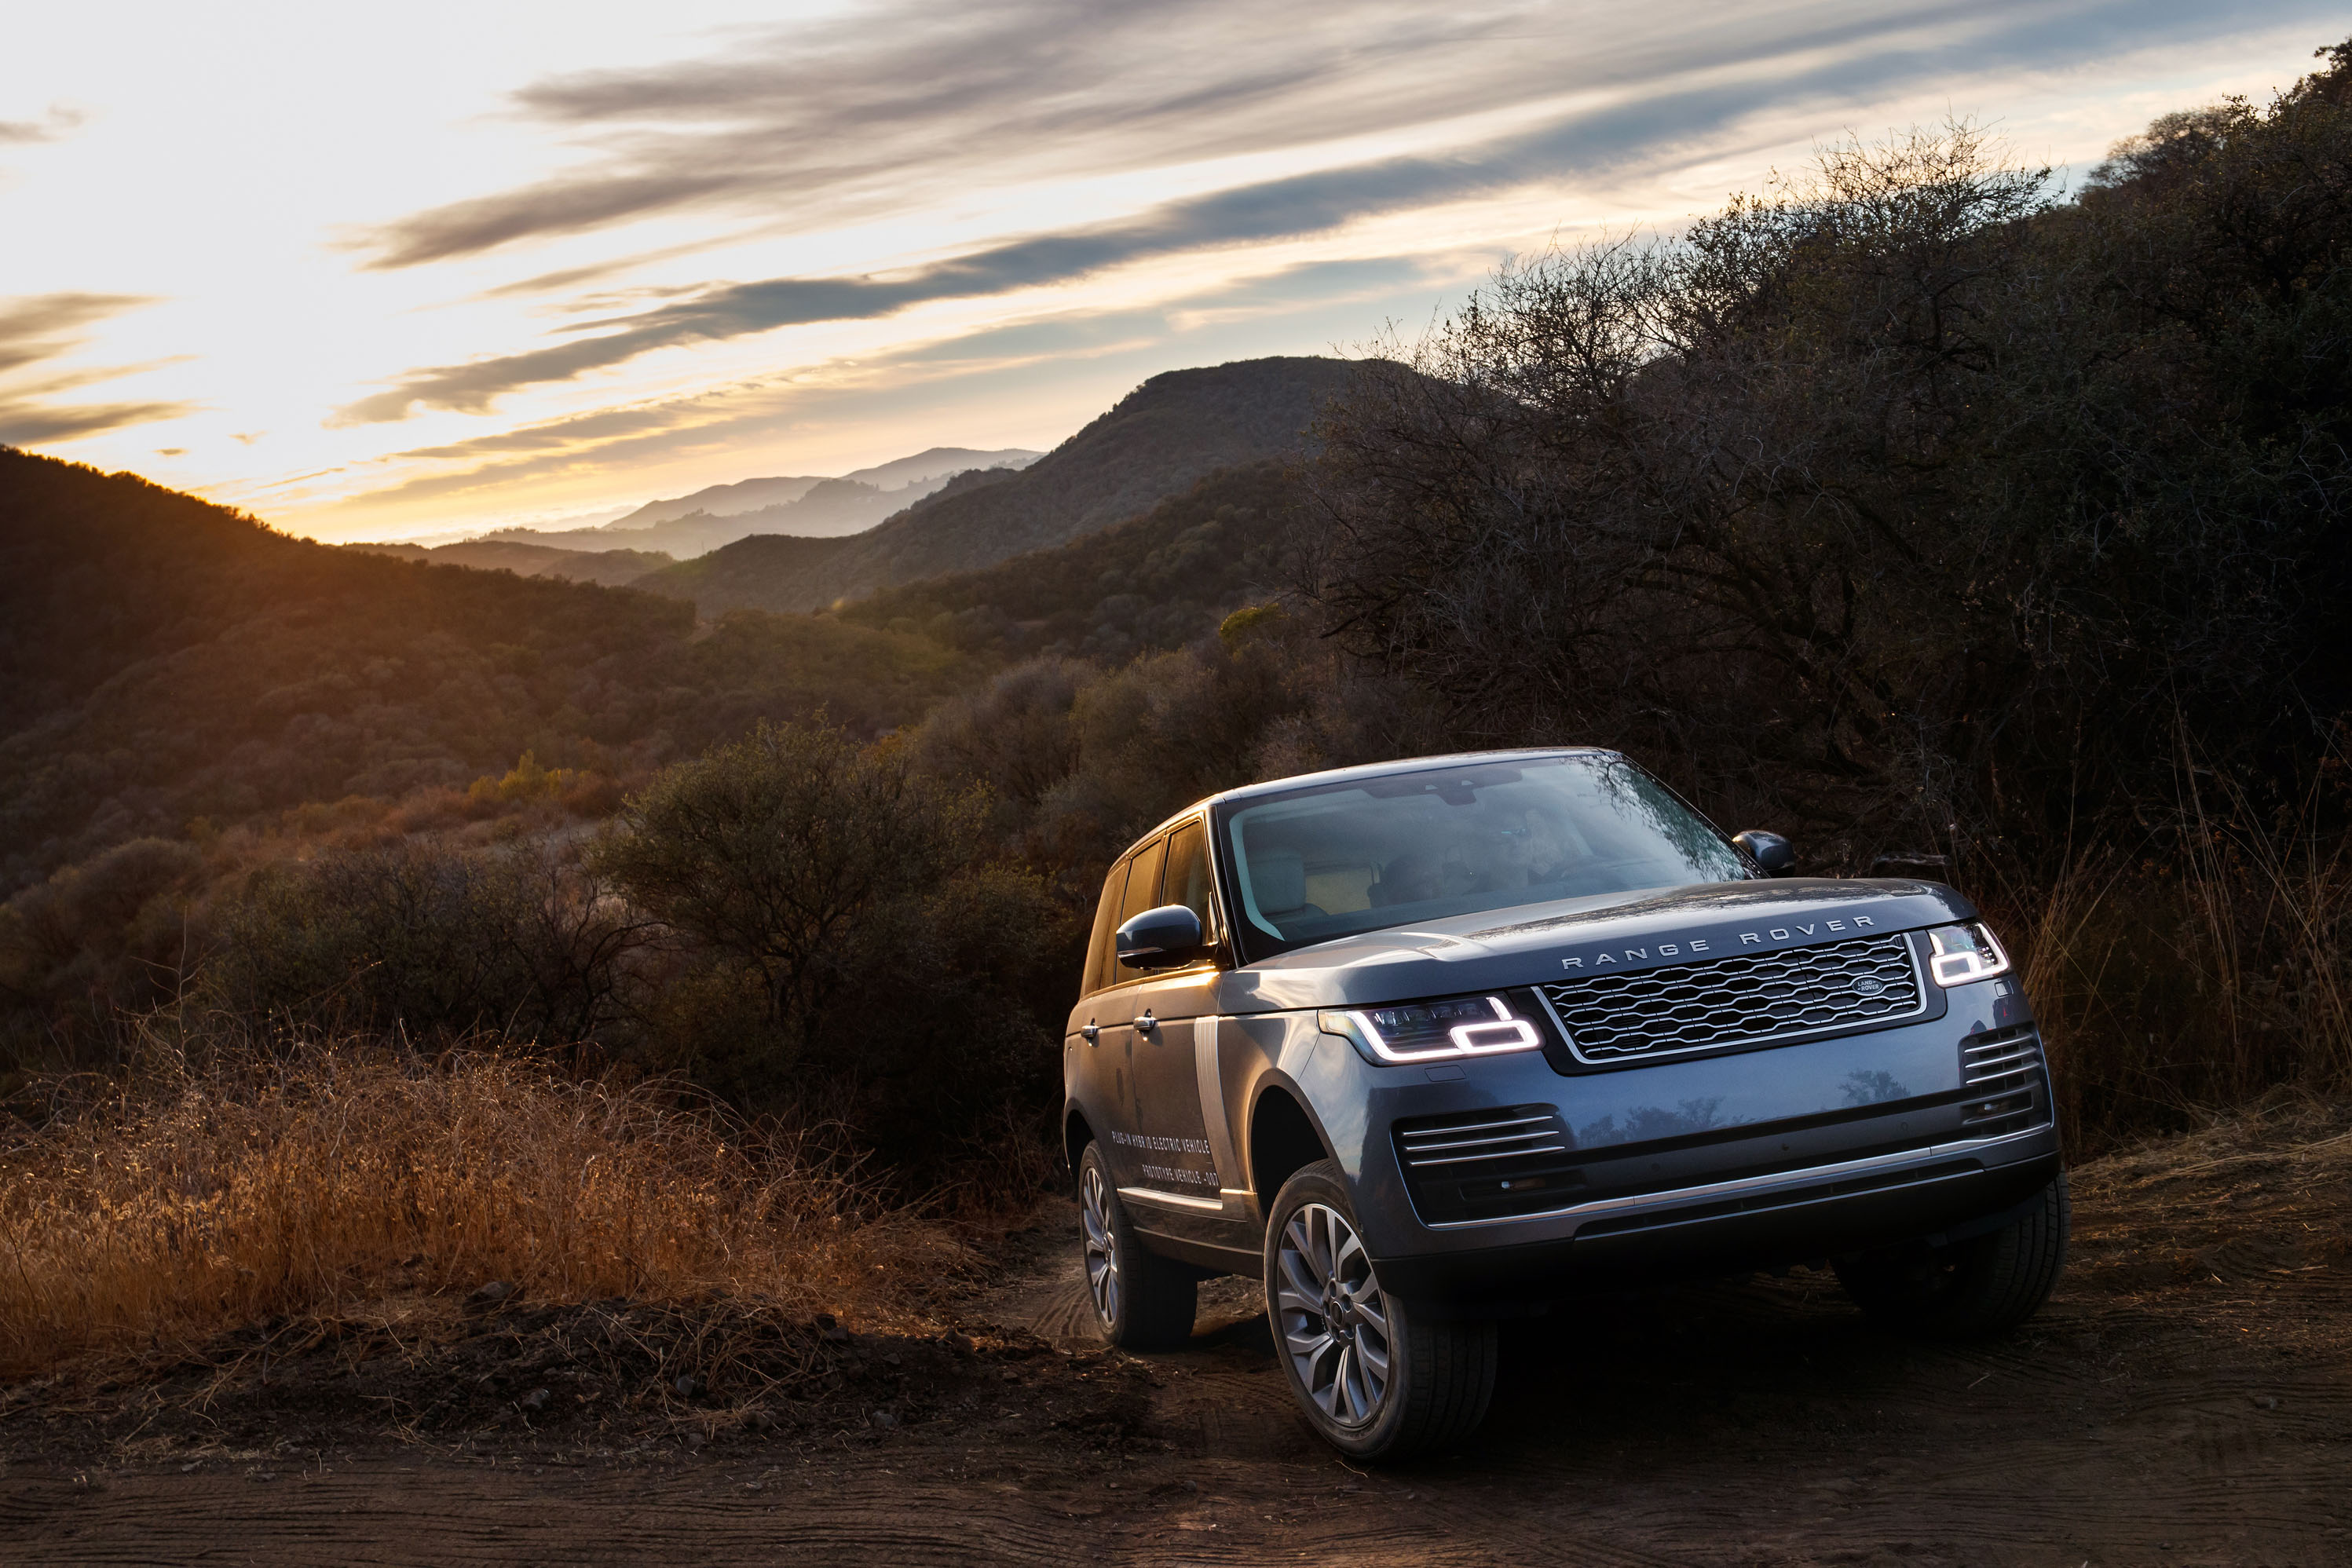 2019 Land Rover Range Rover Review Ratings Specs Prices and